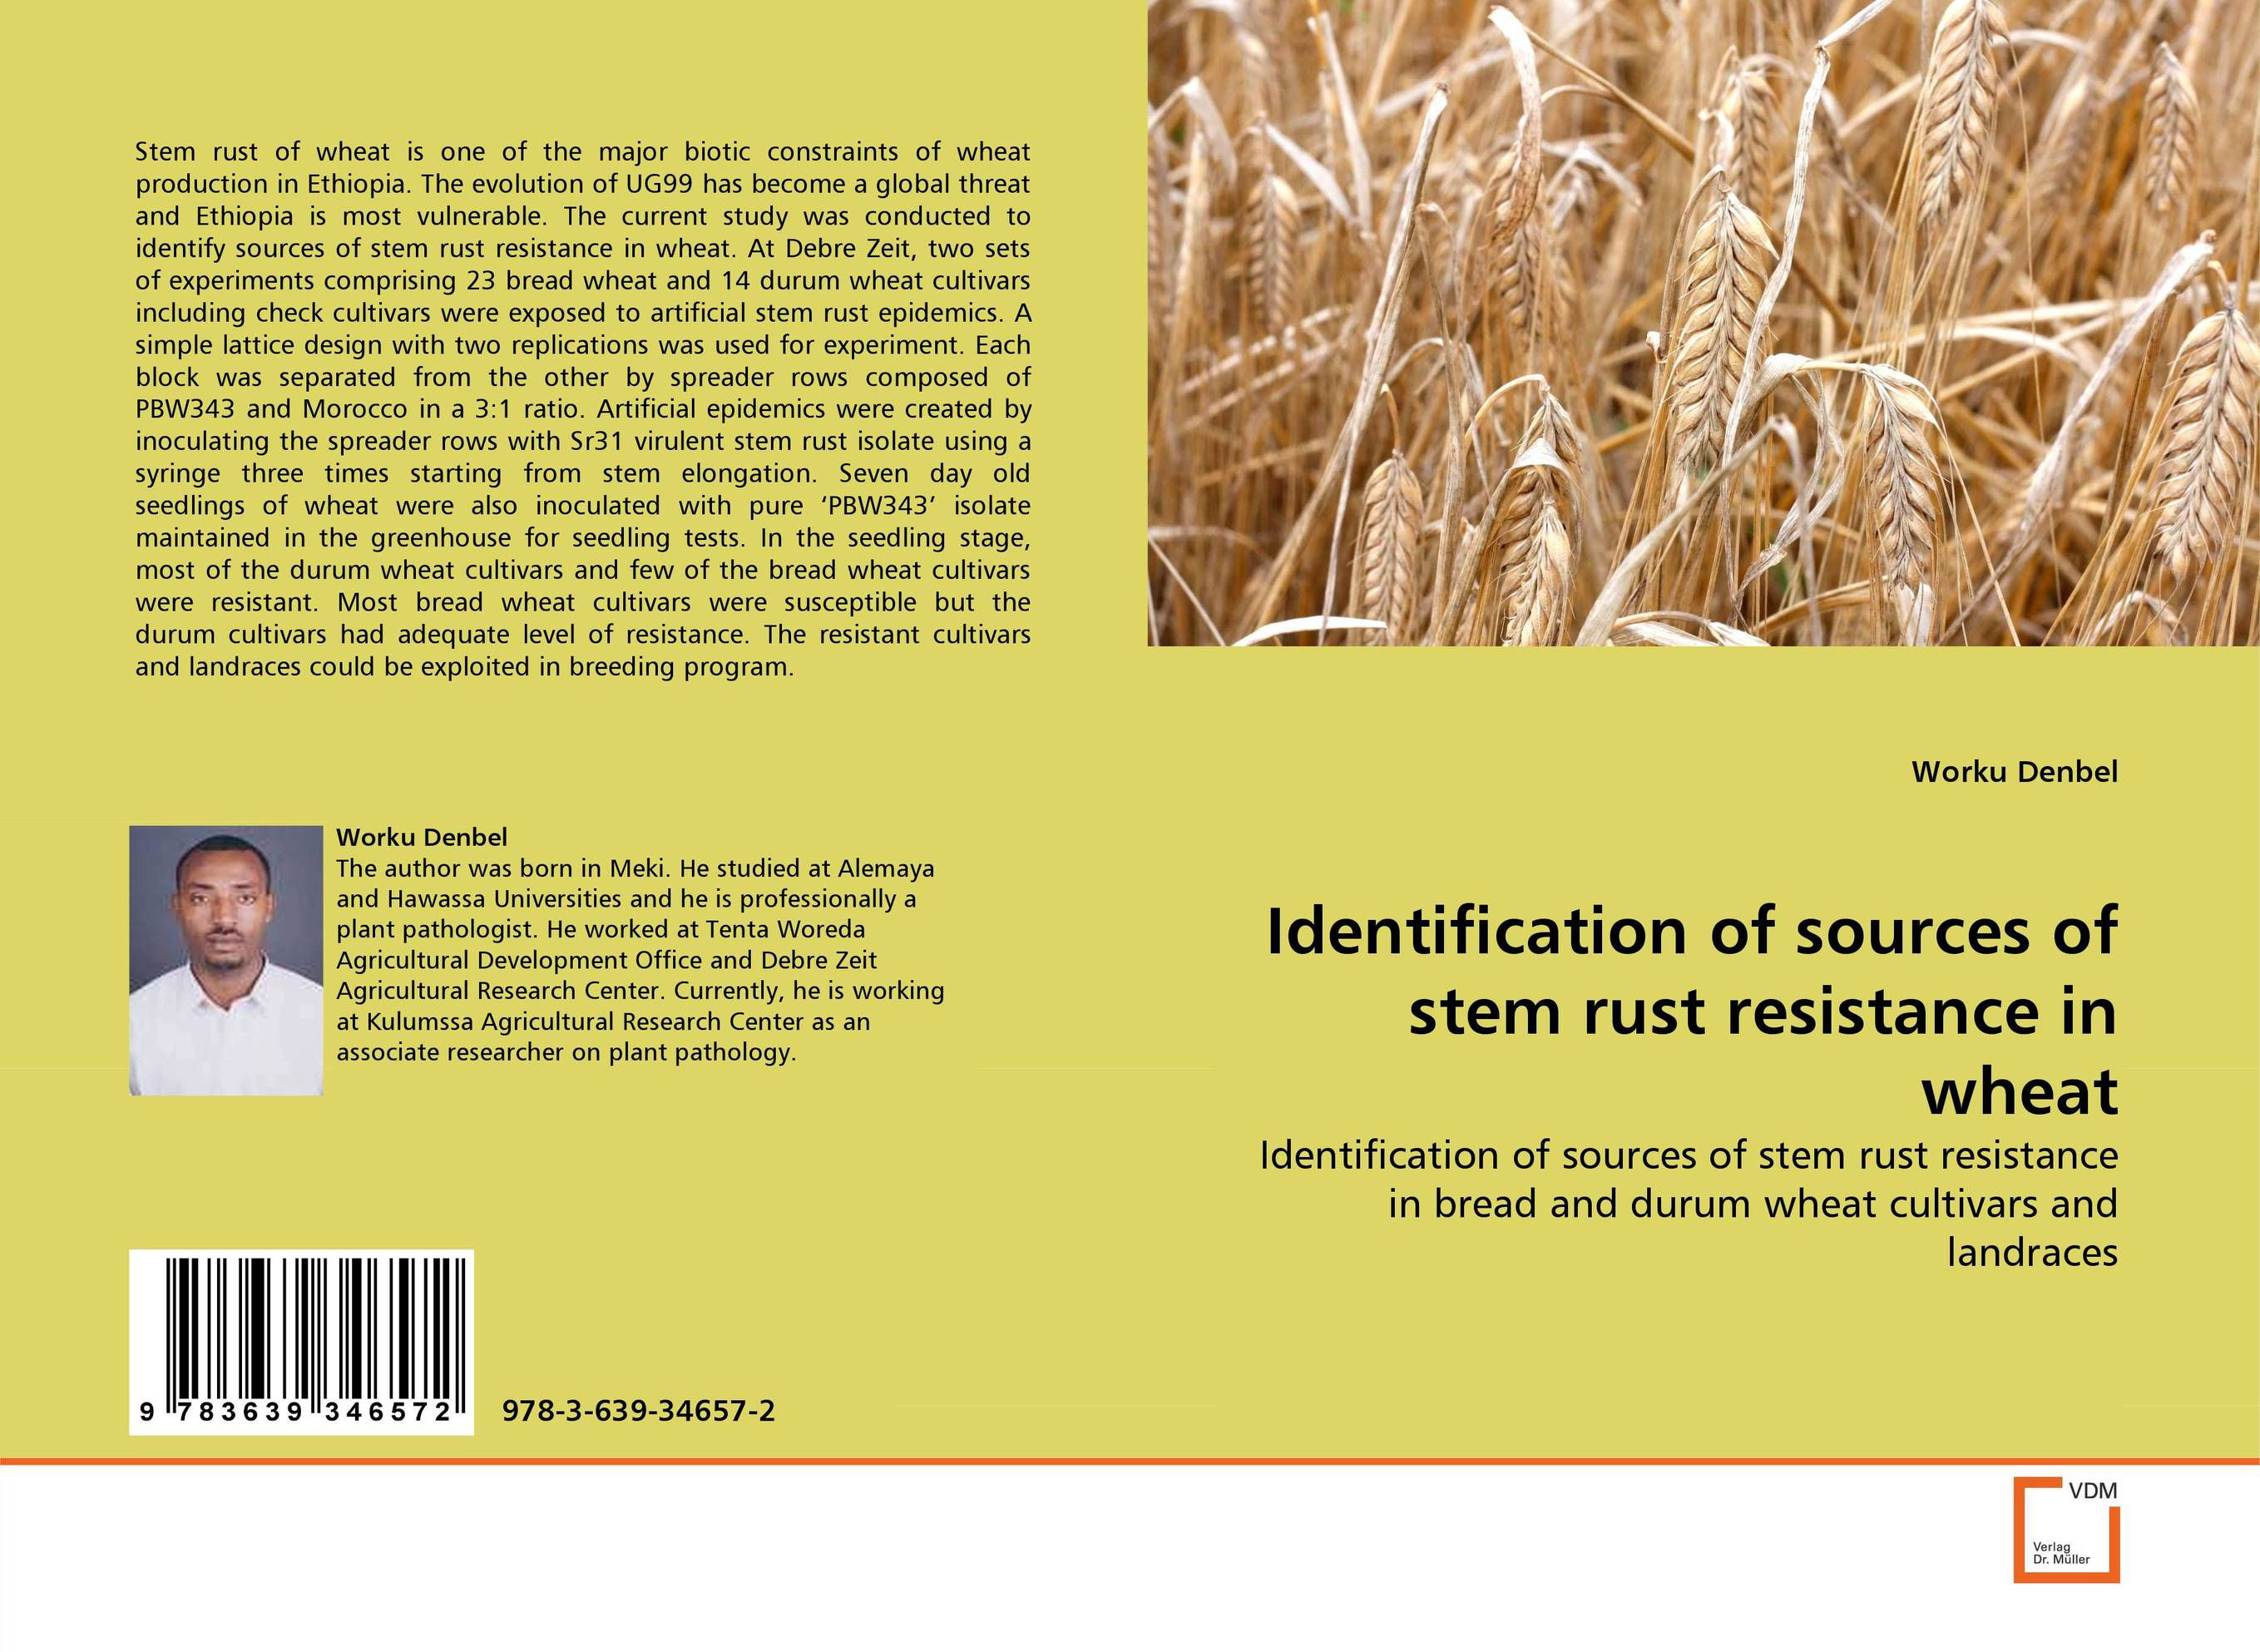 Identification of sources of stem rust resistance in wheat genetic variation for stem rust resistance in spring wheat